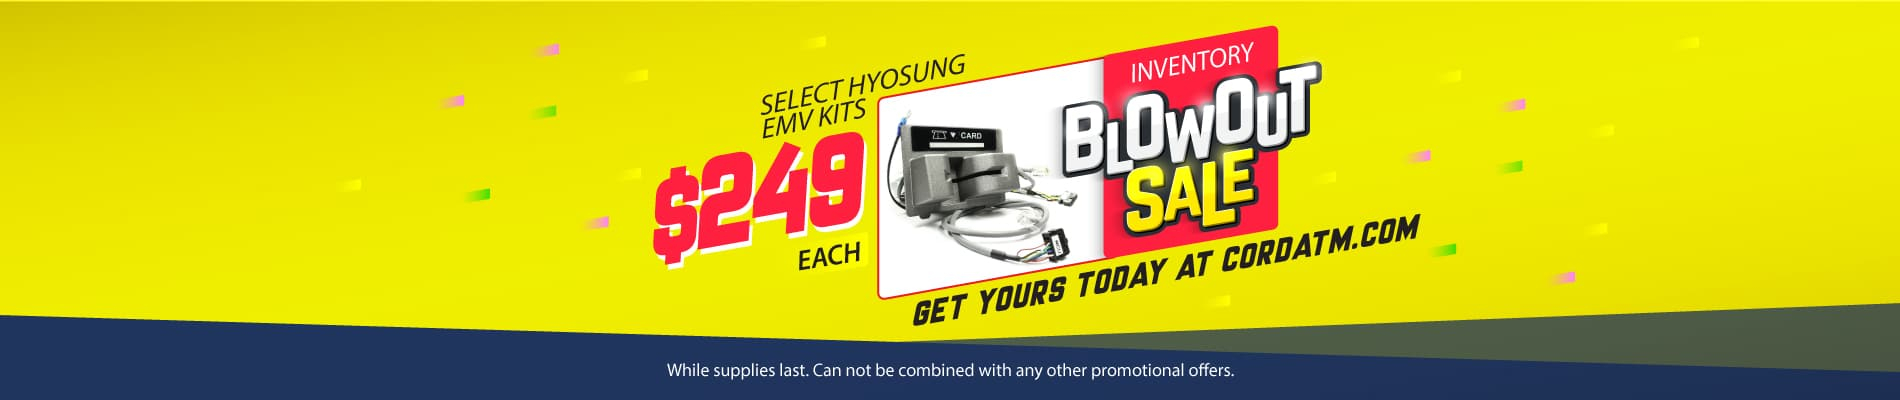 Hyosung EMV Kit Blowout Sale